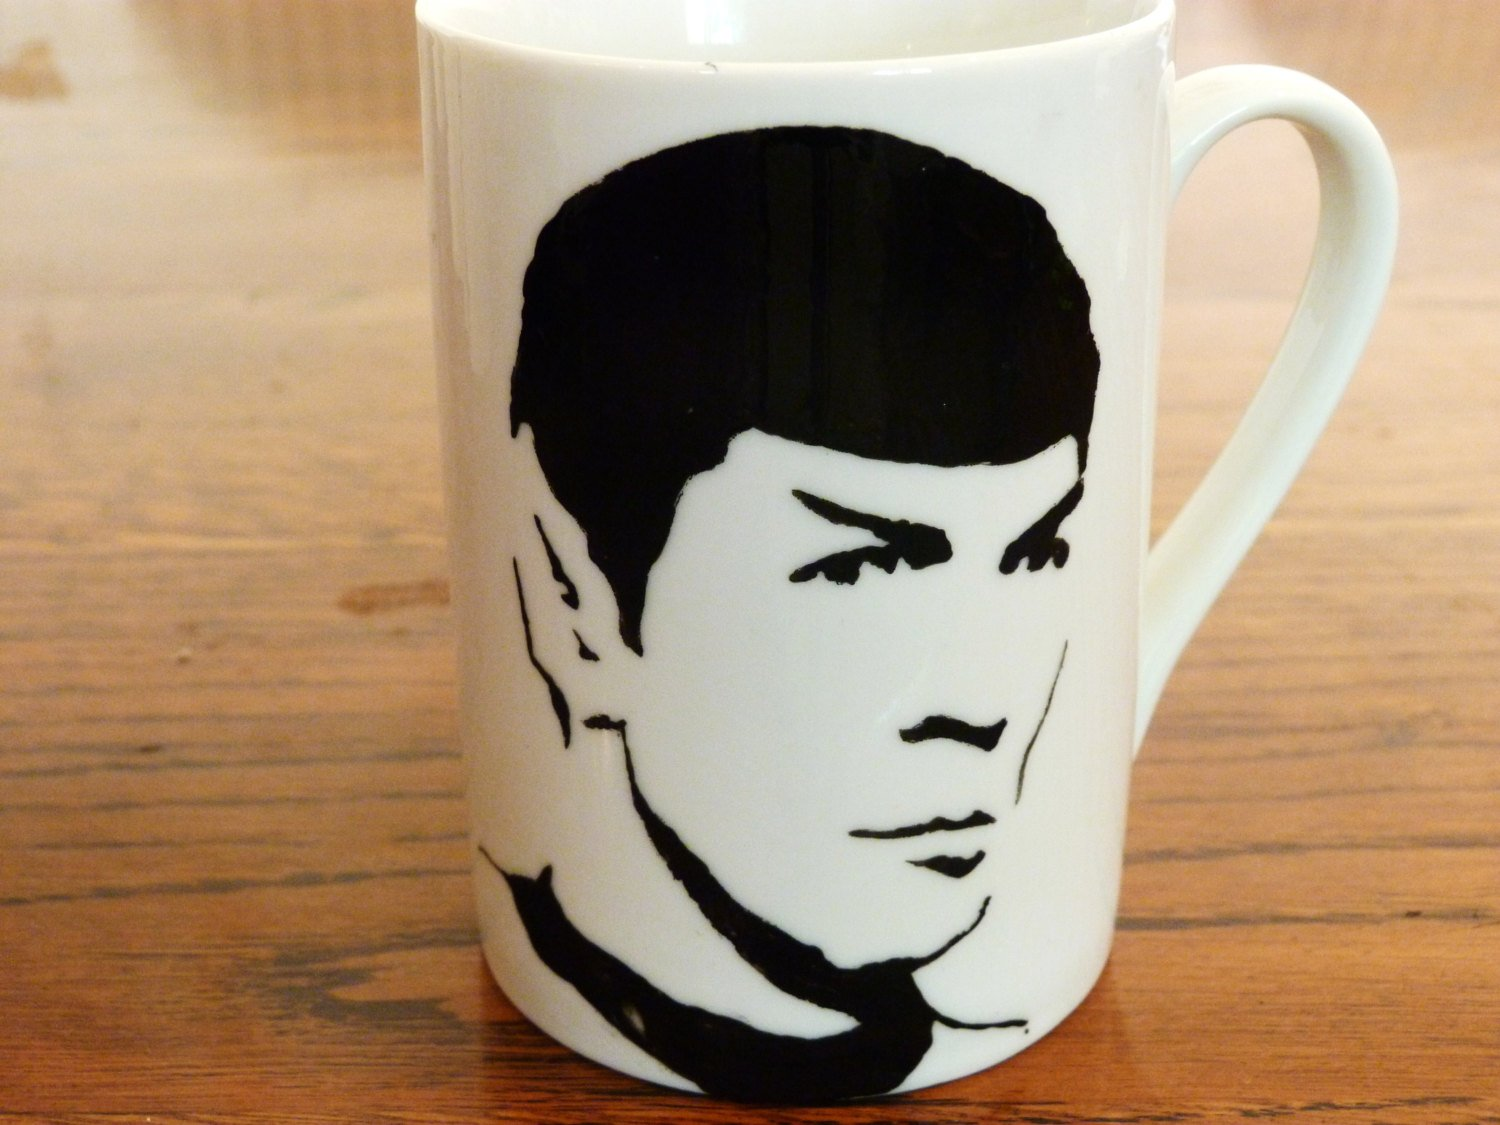 Spock - Star Trek - Hand Printed Cup - ByCandlelight27